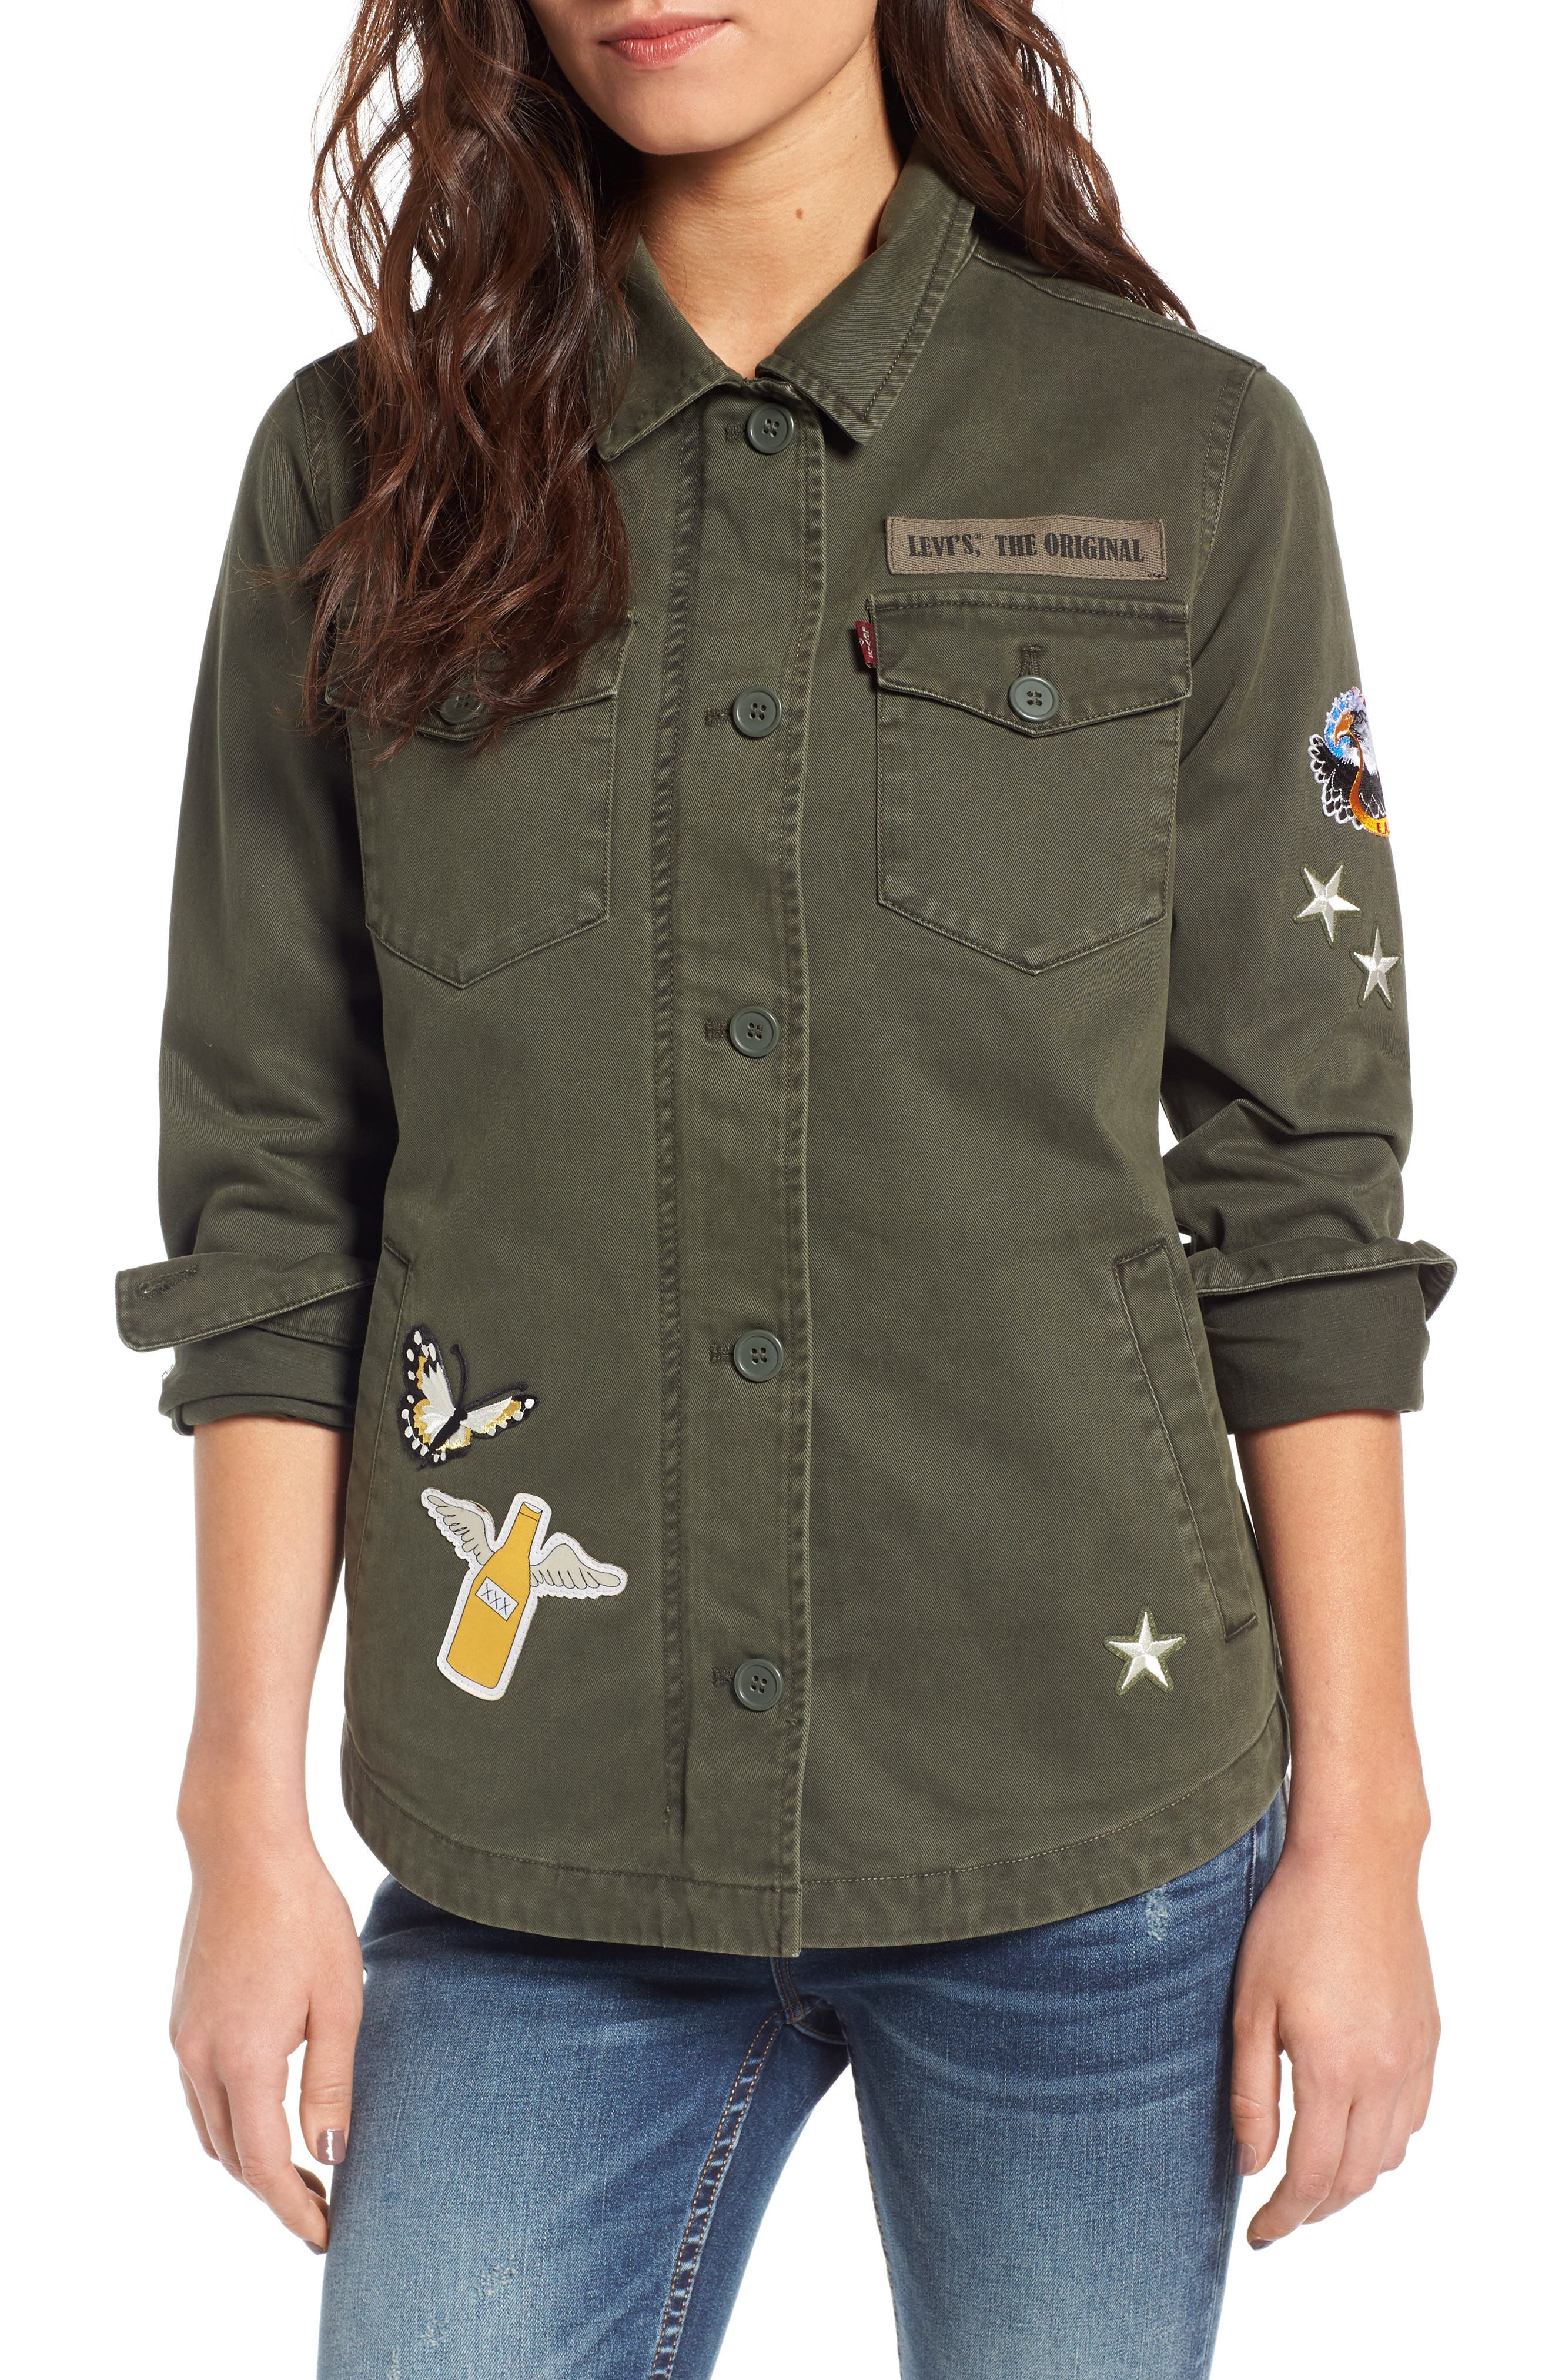 Cargo Jacket with Patches,                             Main thumbnail 1, color,                             317